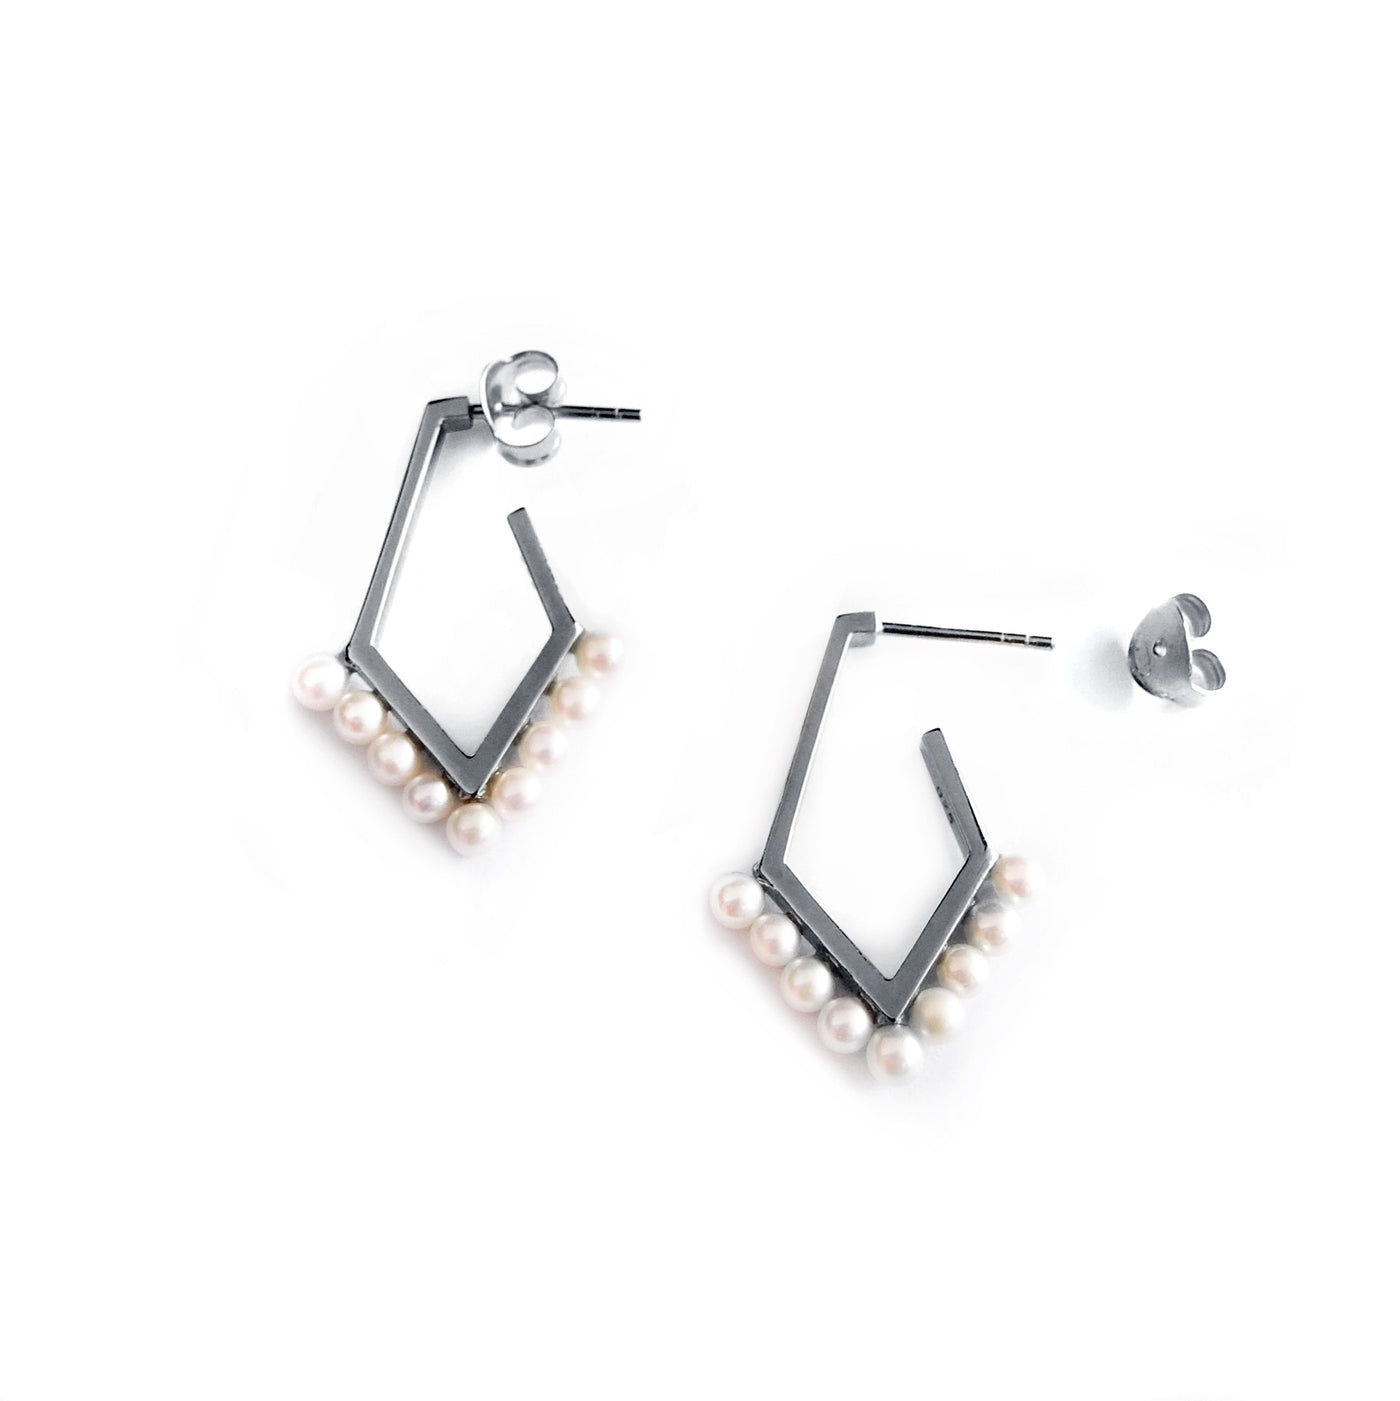 Pearls Earrings - Chainless Brain